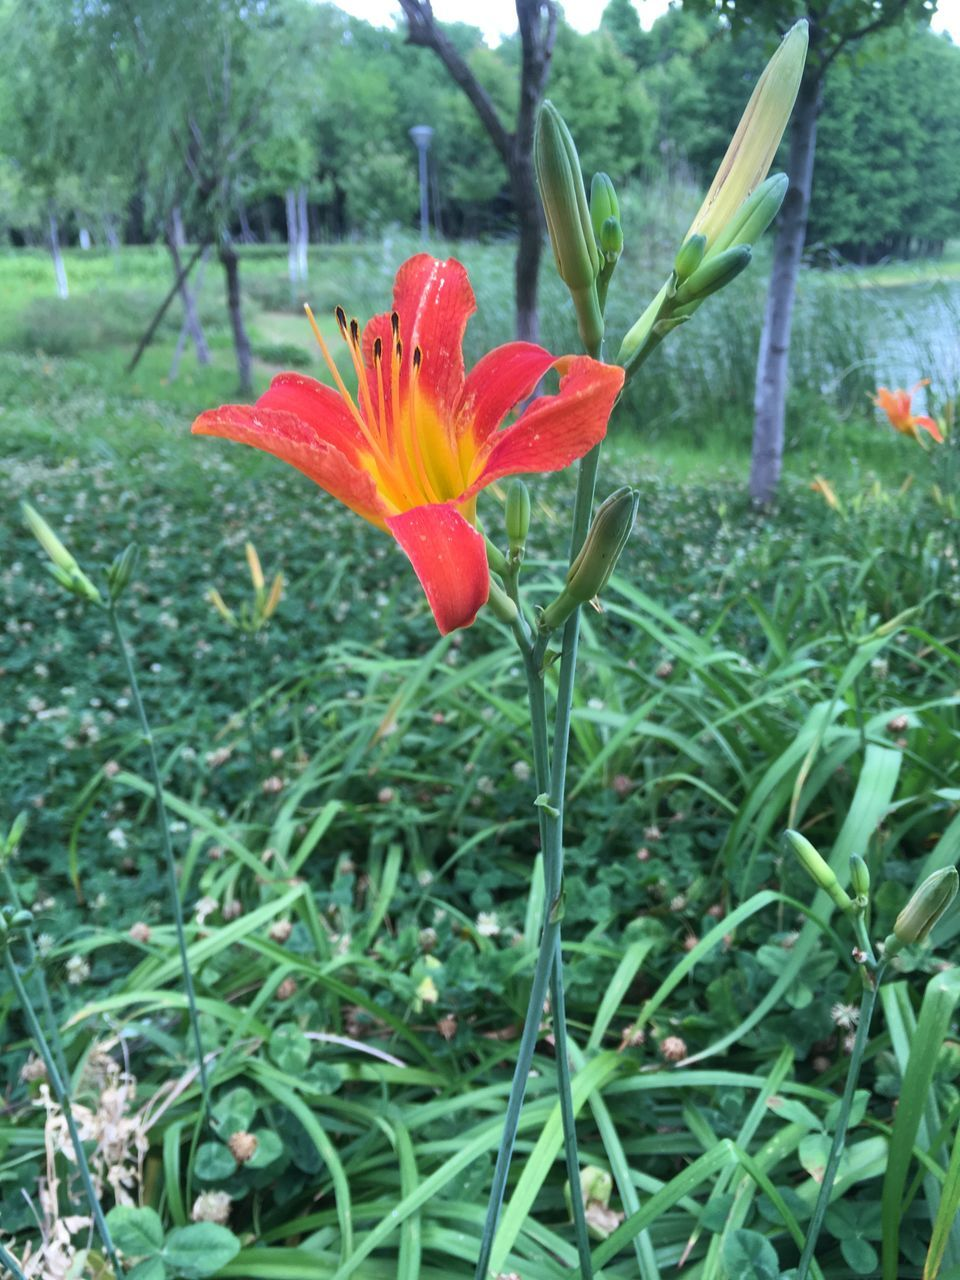 flower, growth, petal, beauty in nature, freshness, nature, flower head, fragility, plant, field, blooming, day, outdoors, no people, close-up, day lily, crocus